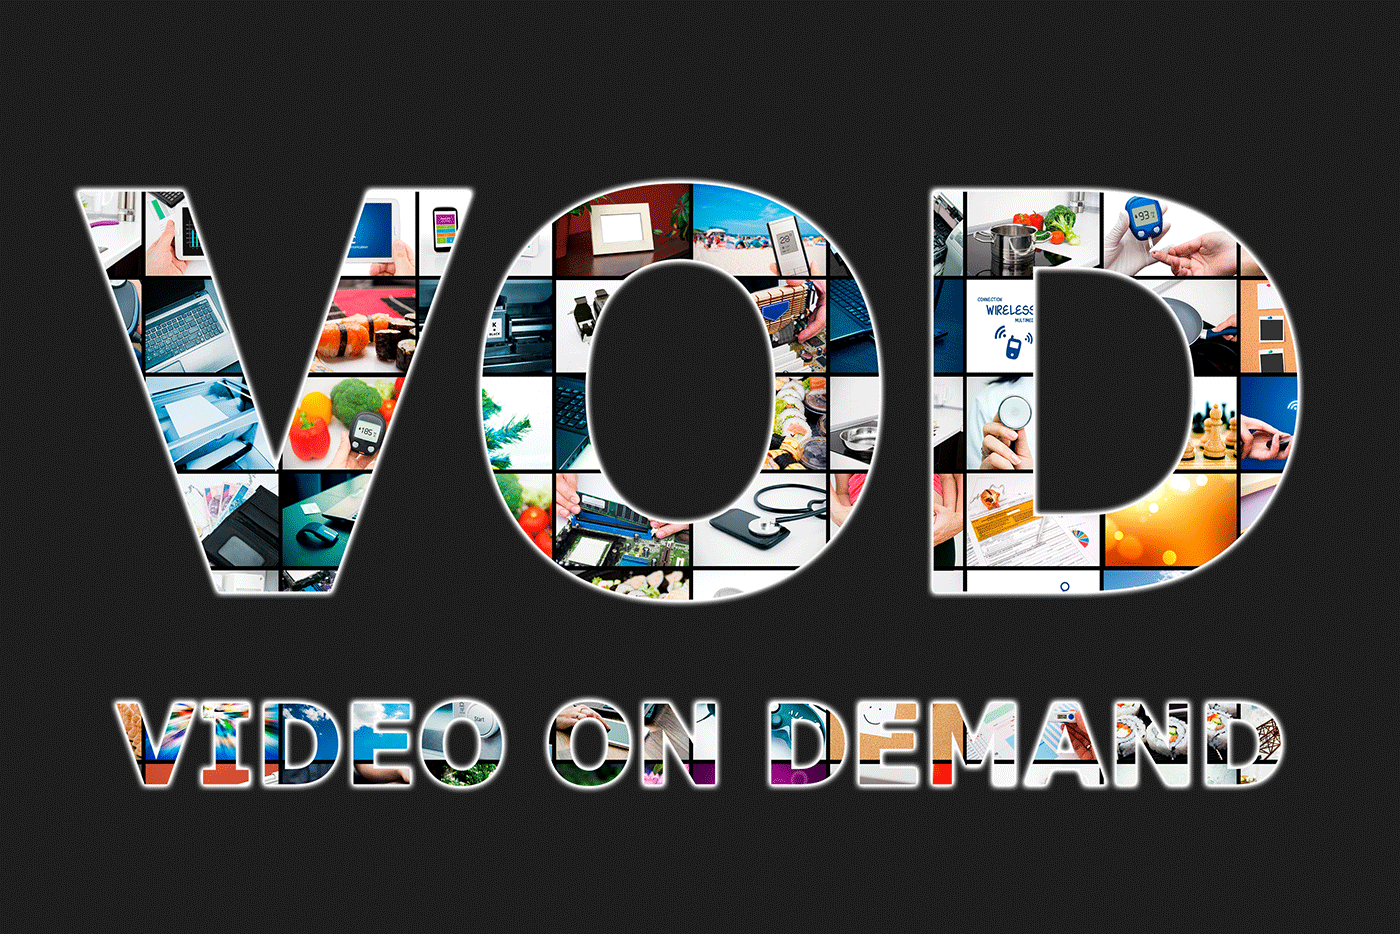 Videos On Demand